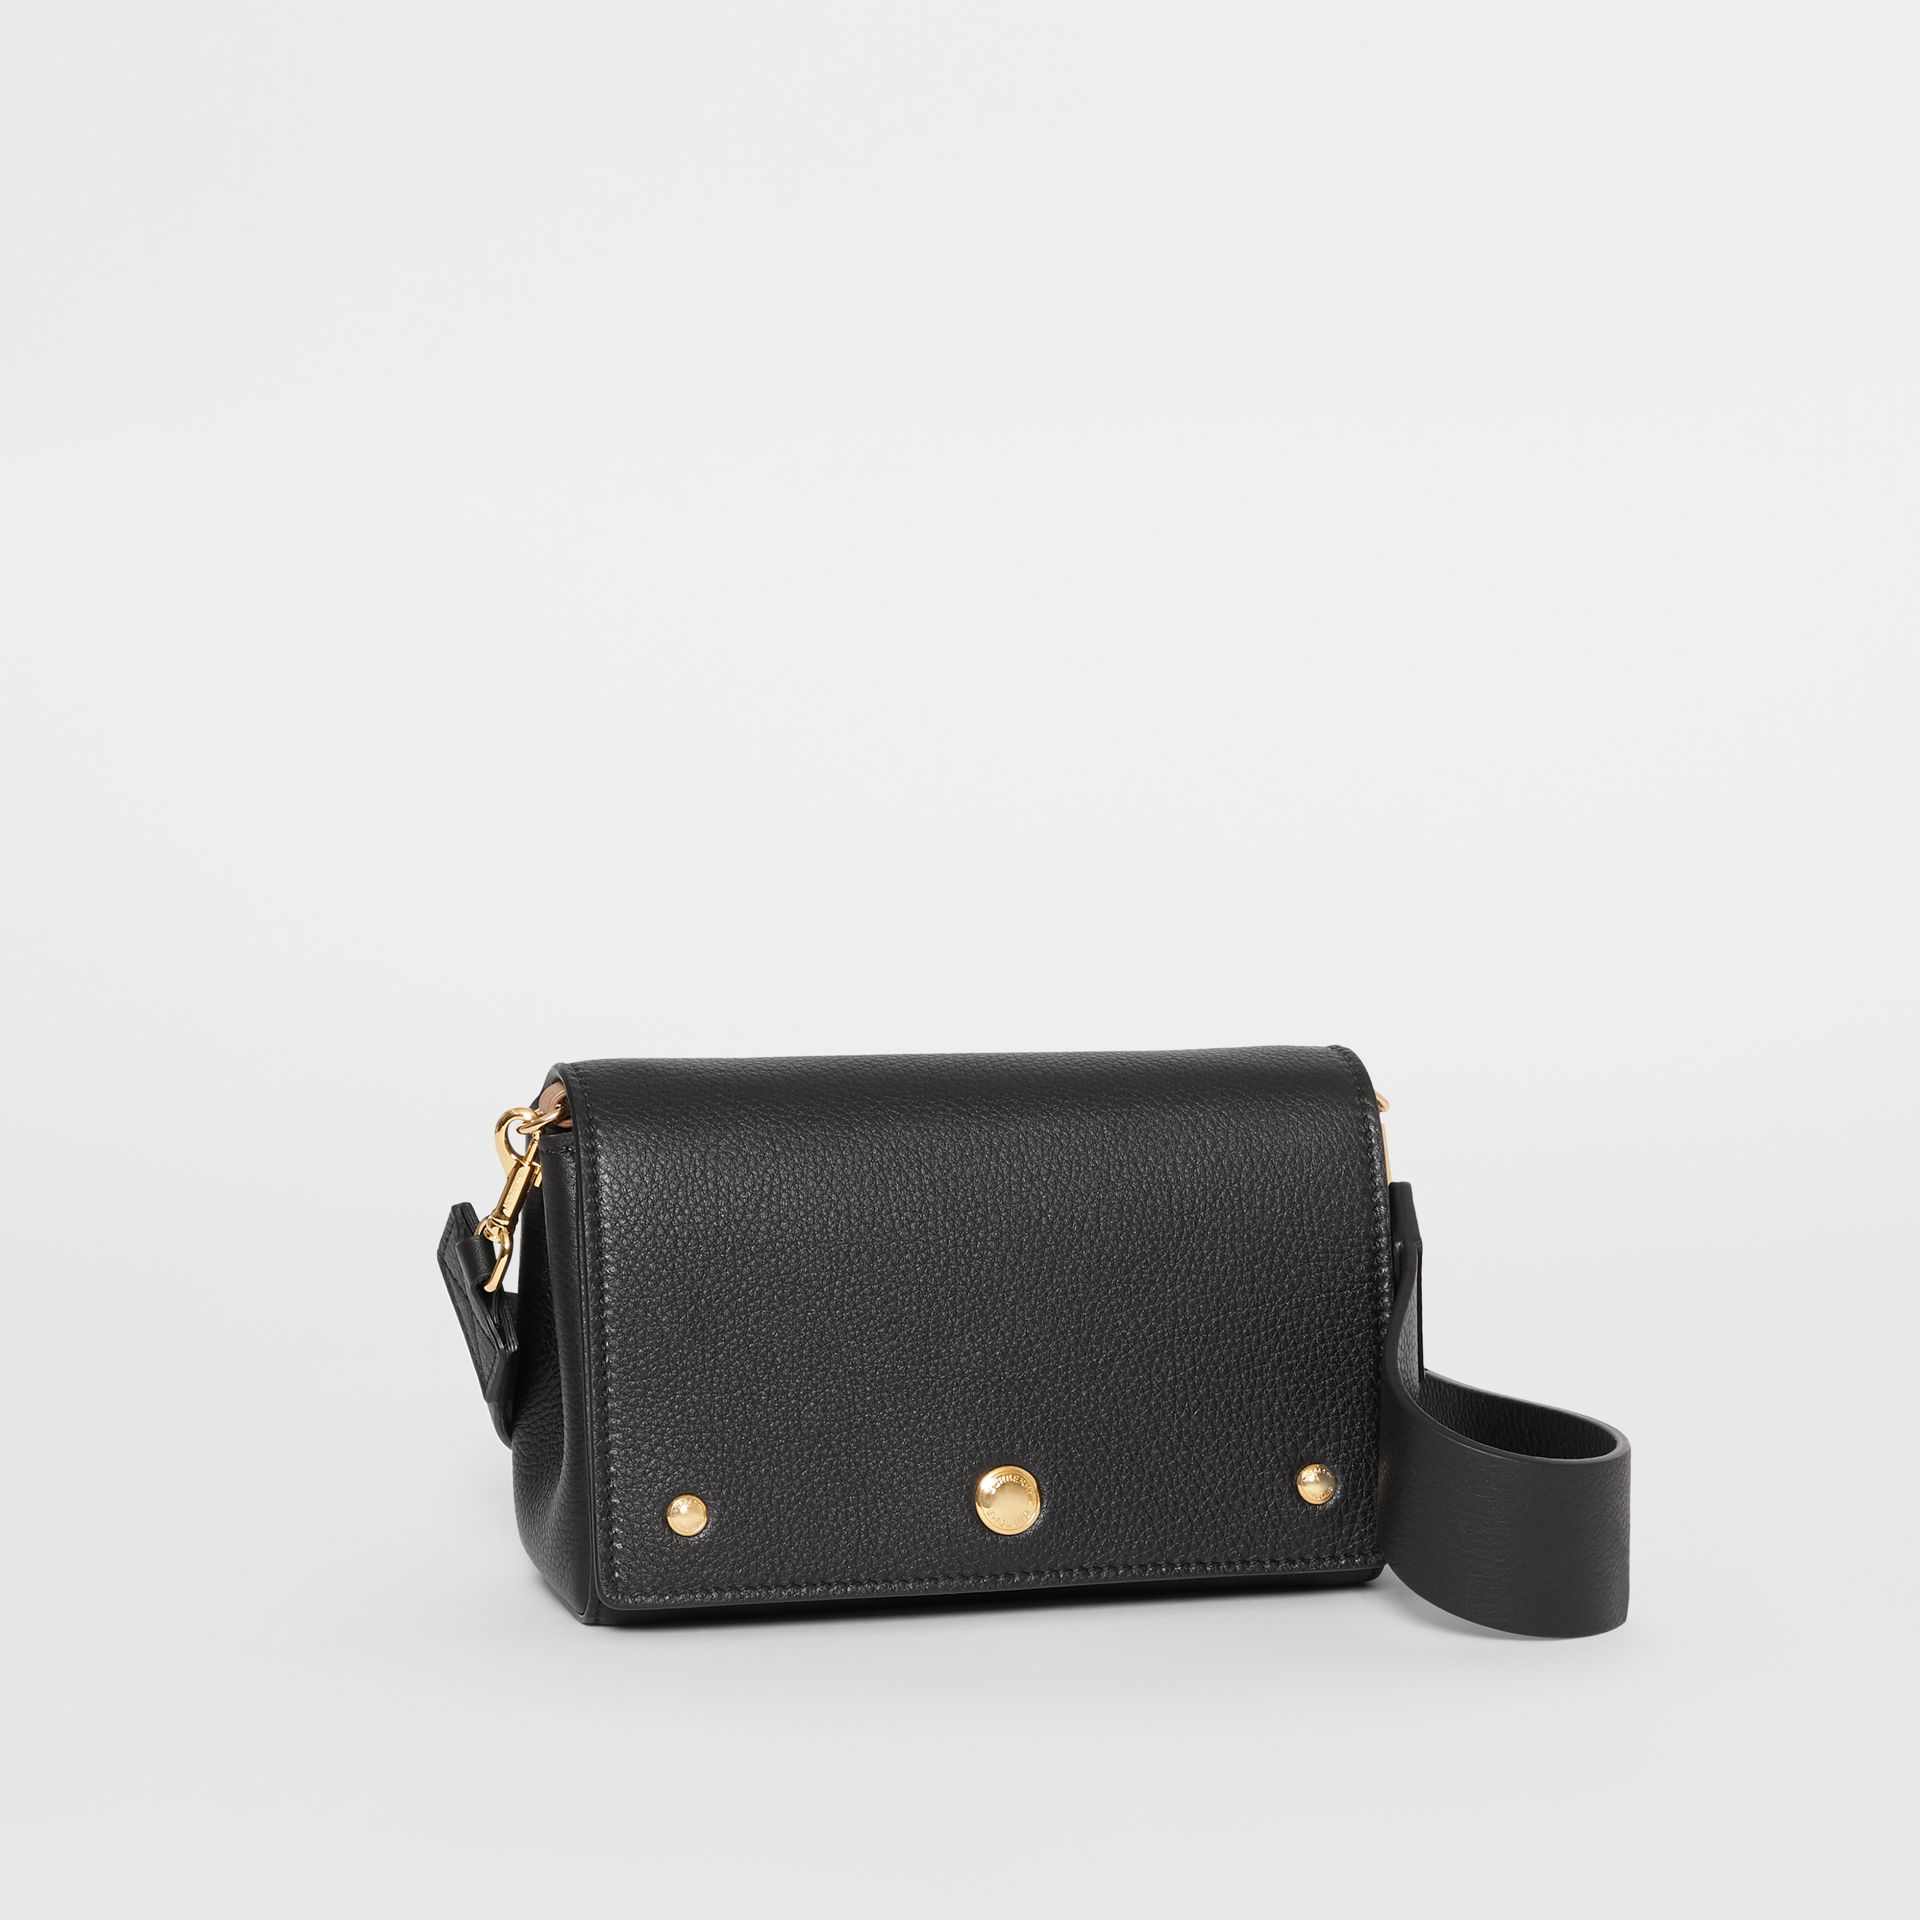 Small Grainy Leather Crossbody Bag in Black - Women | Burberry Singapore - gallery image 6